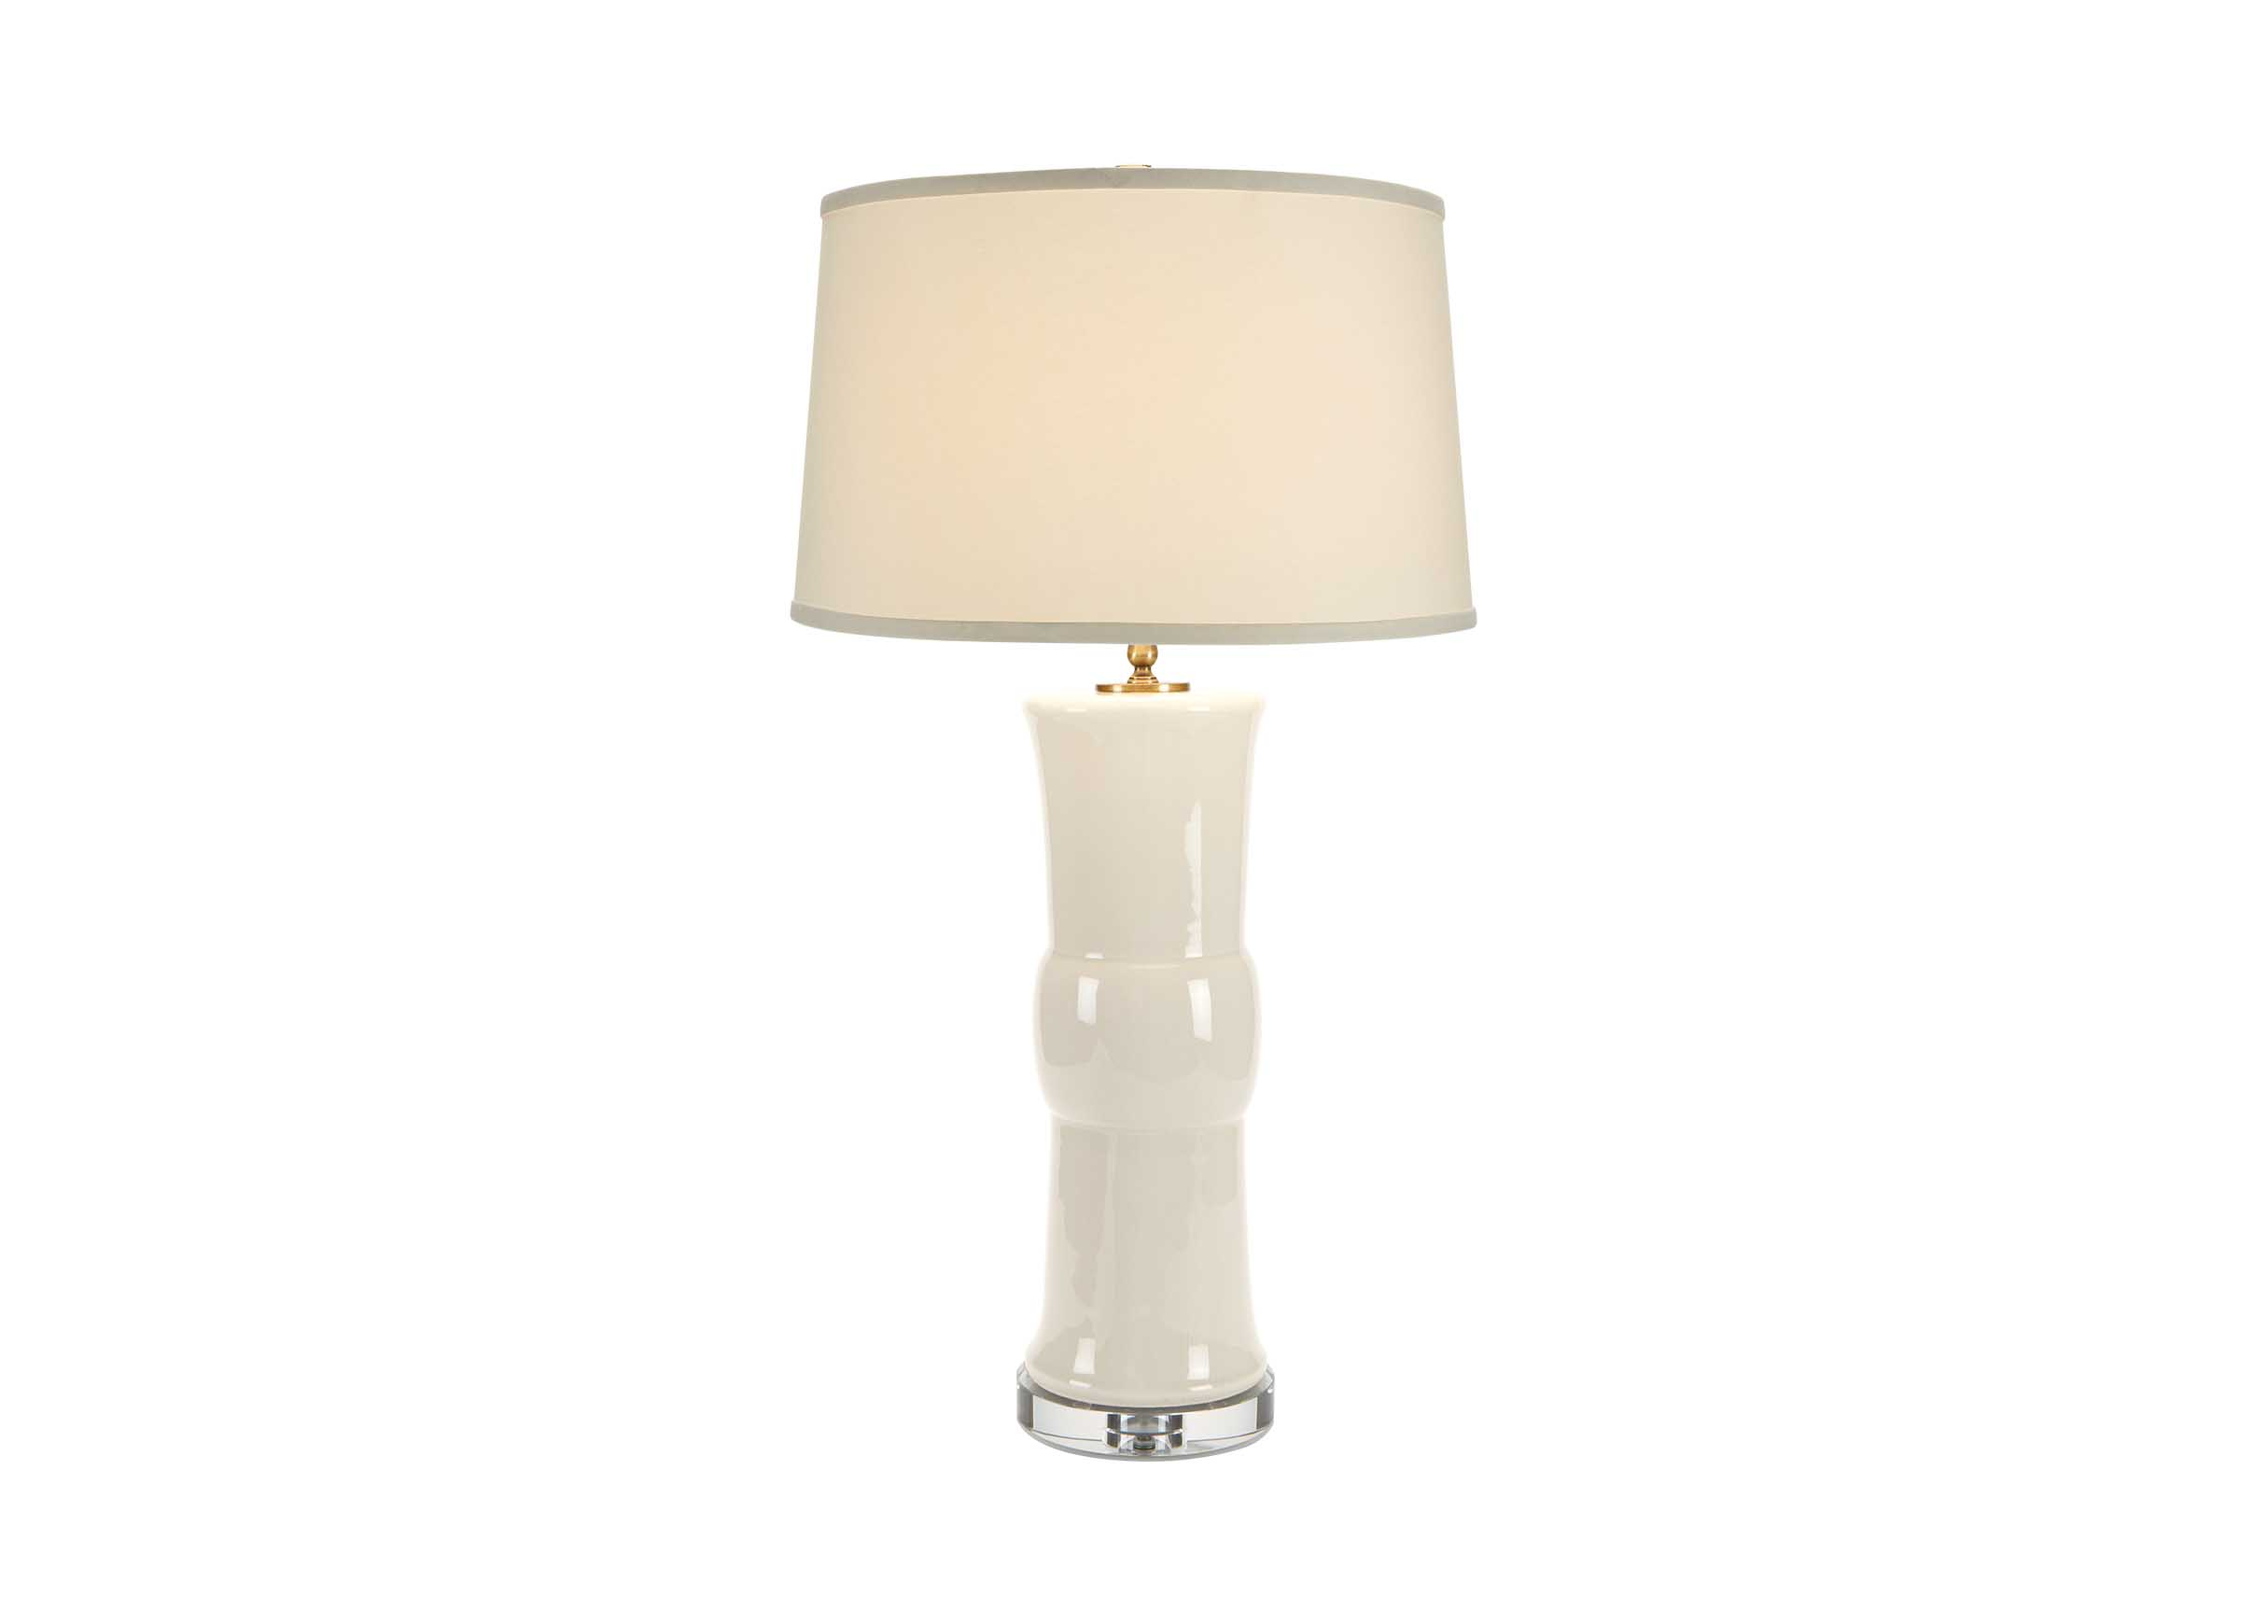 Caprice Table Lamp Table Lamps Ethan Allen